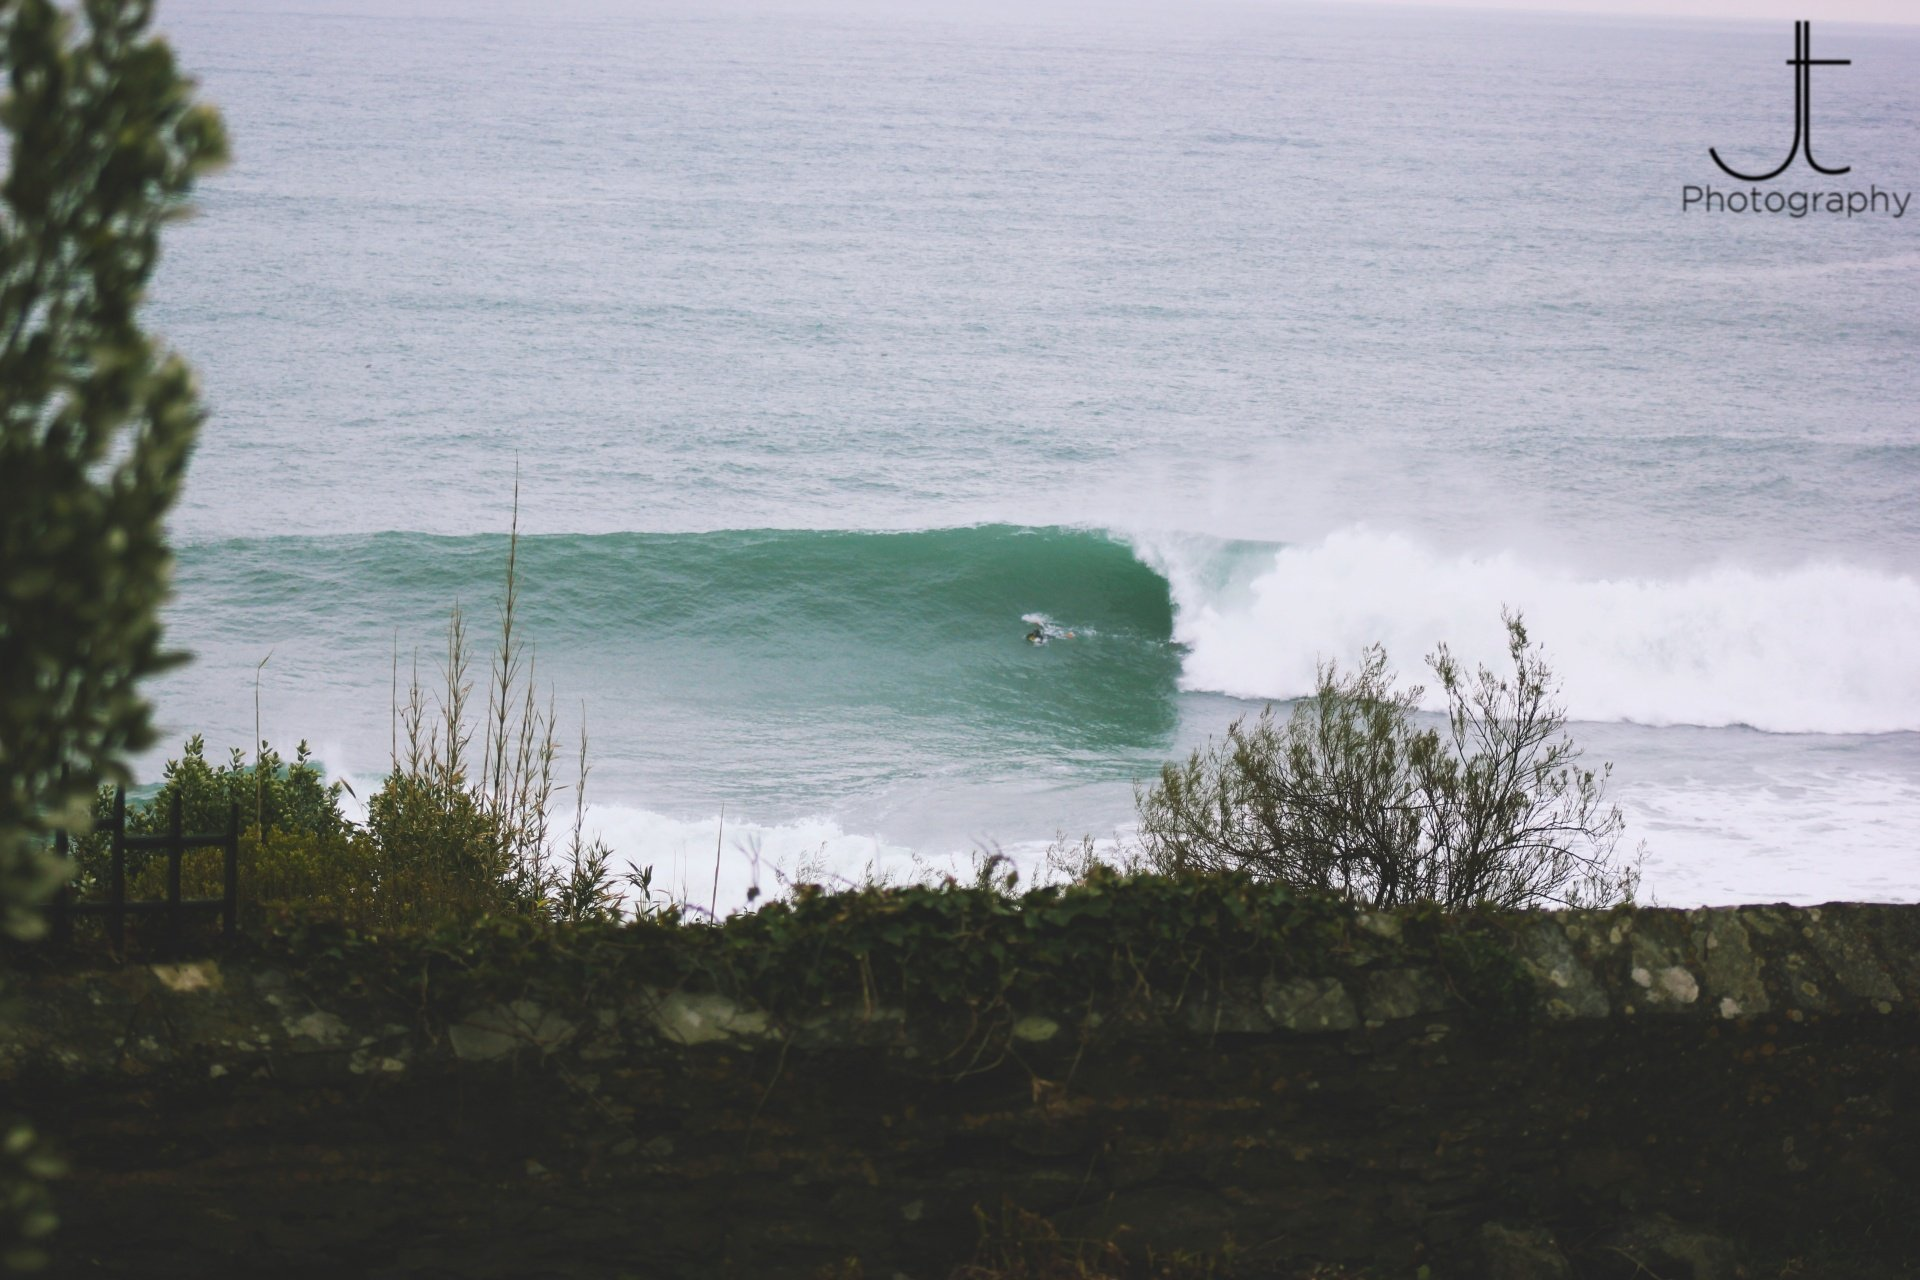 Joe Tinsley-Hewson's photo of Porthleven